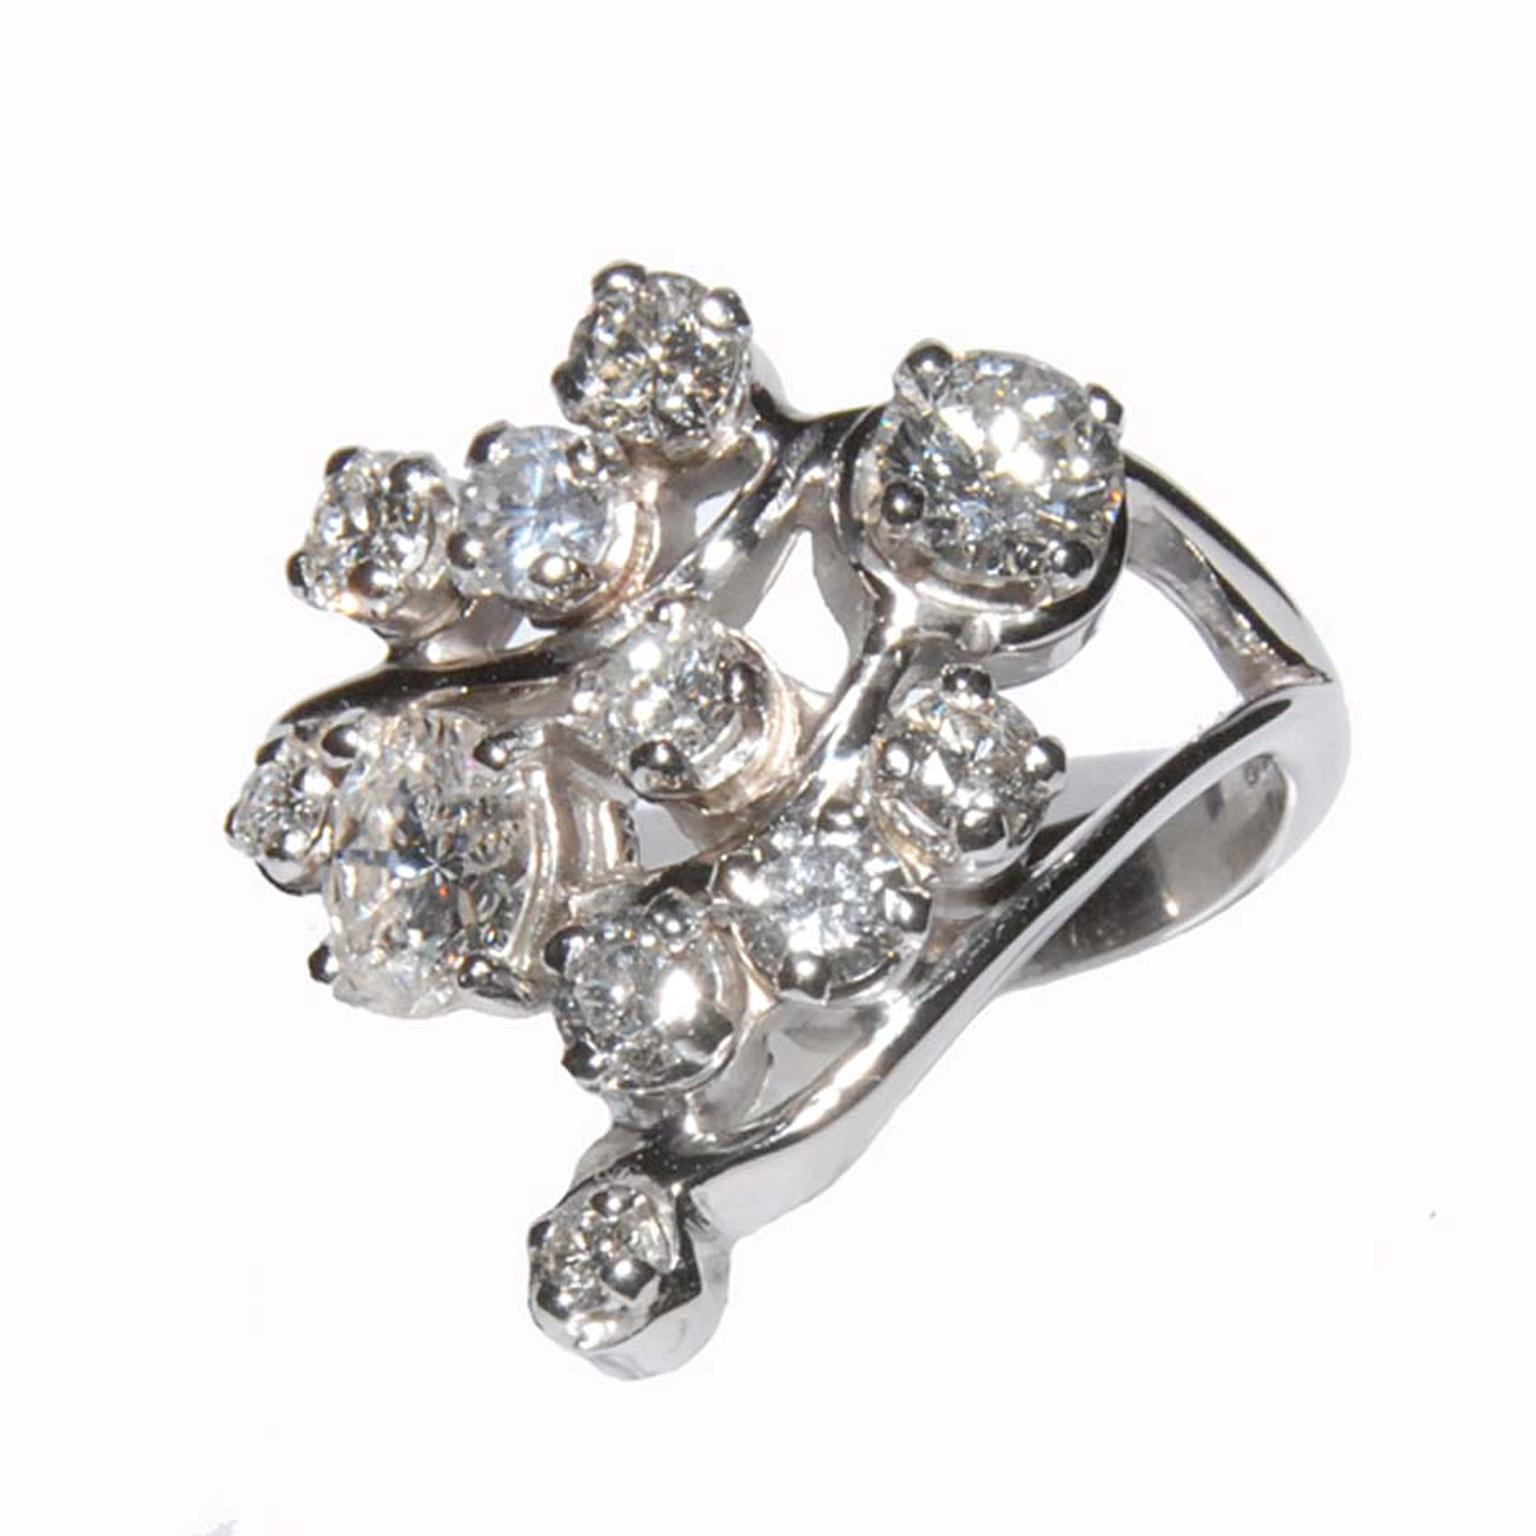 Keith Gordon engagement ring bursting with brilliant-cut diamonds.